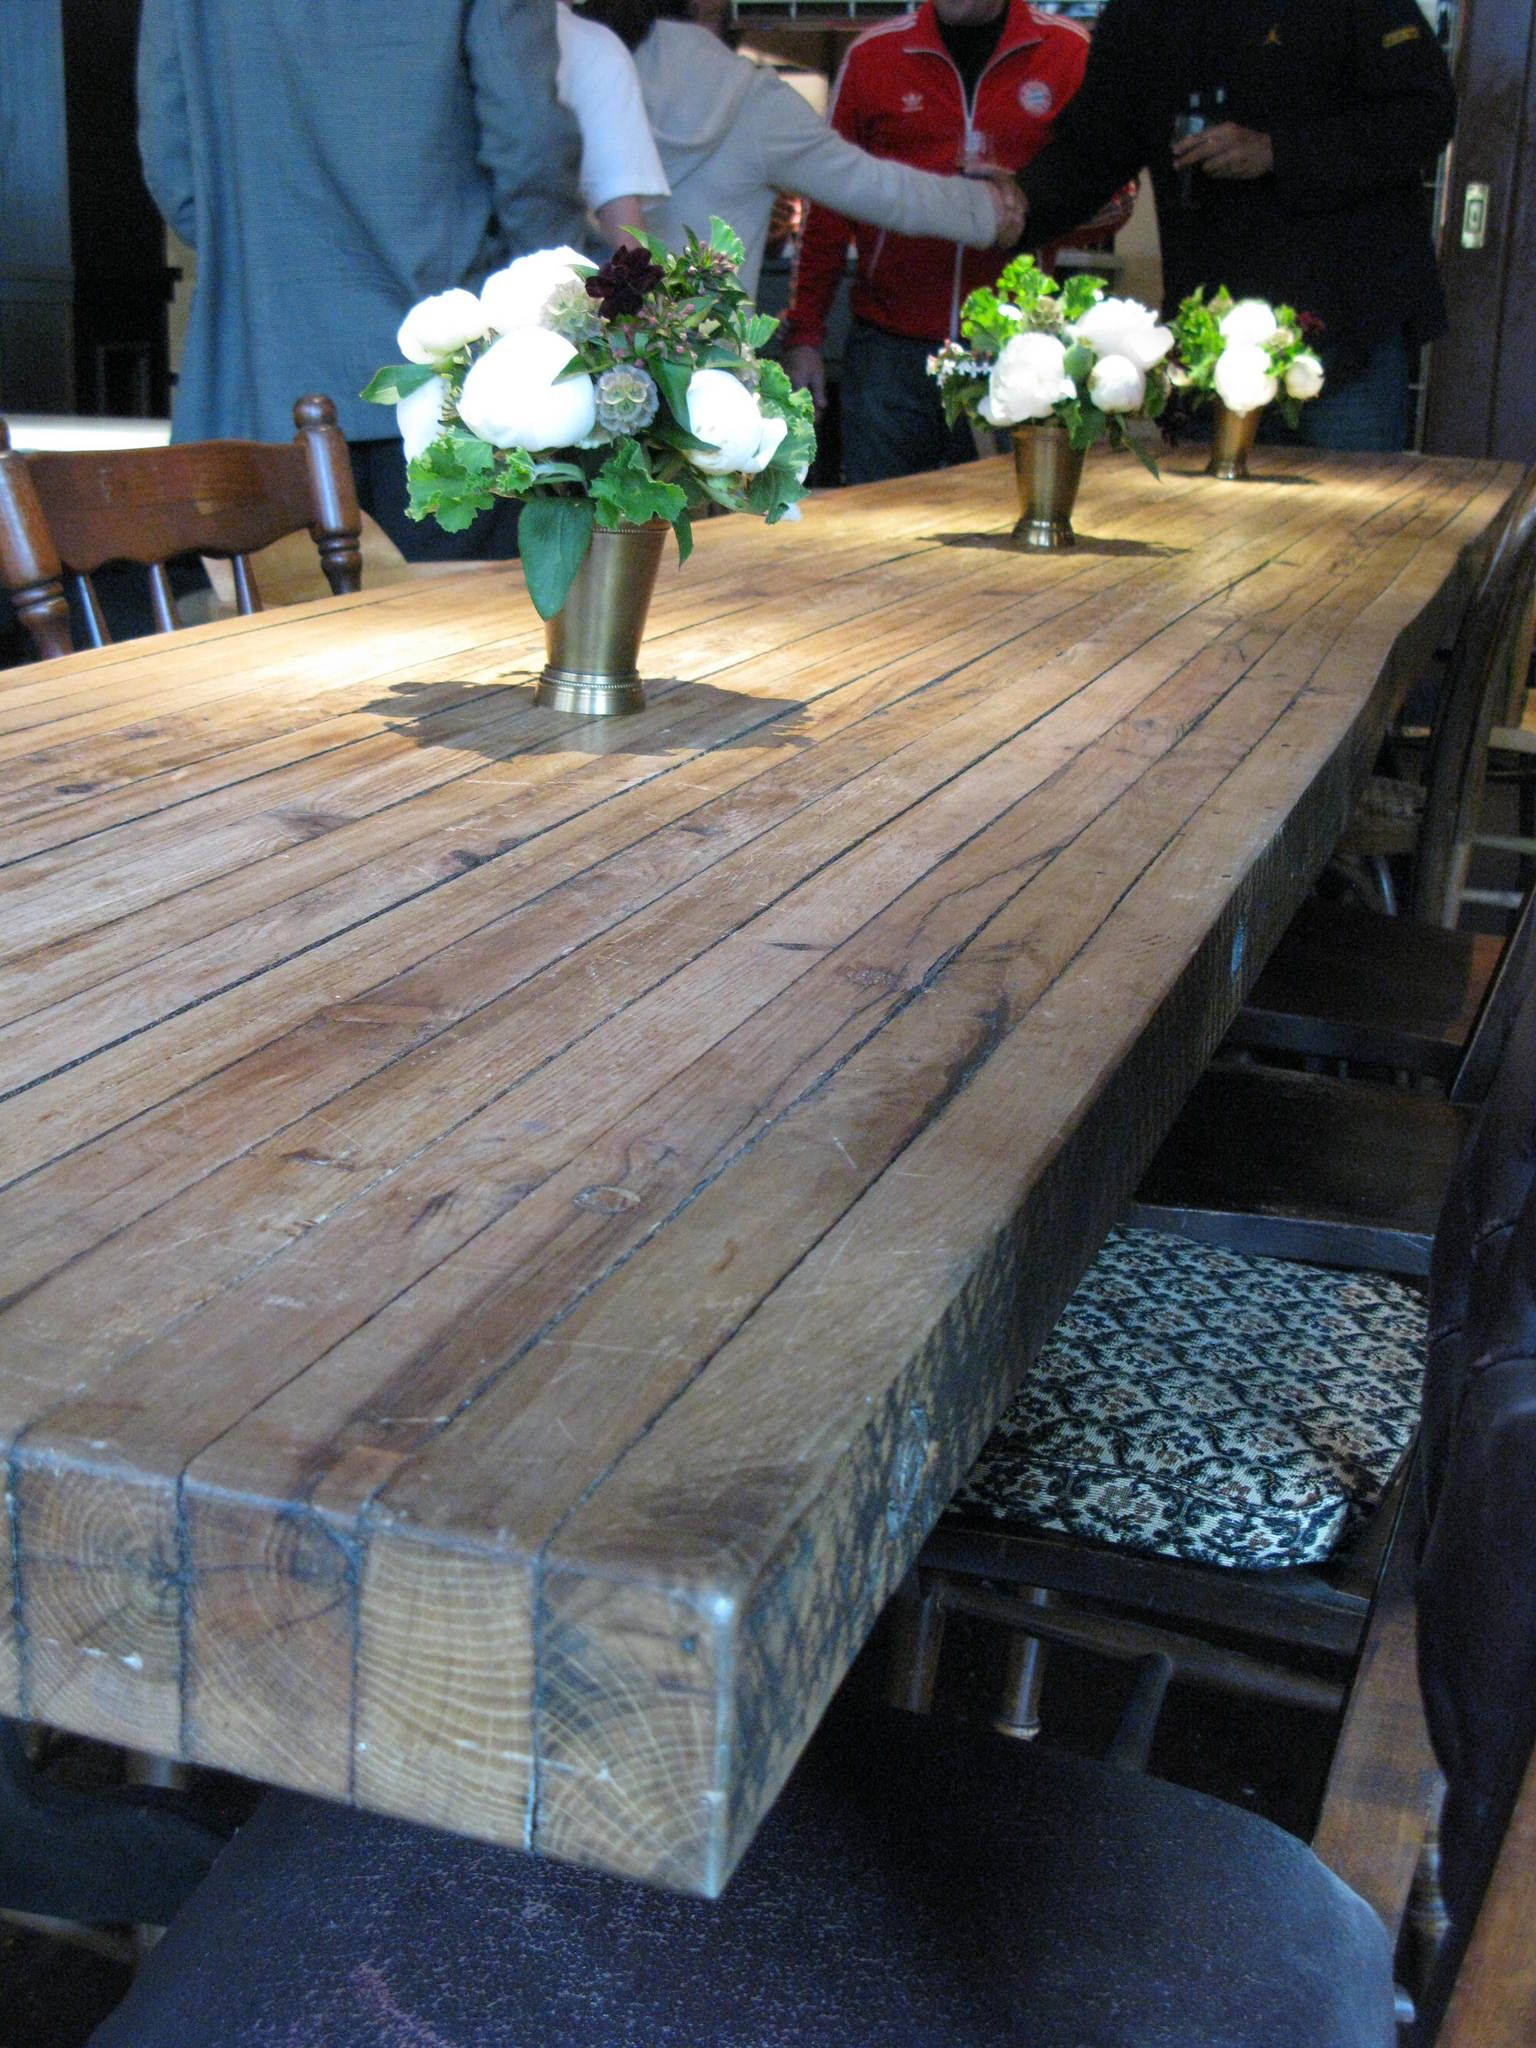 The butcher block tables ikea designing home dining tables butcher block dining room table ikea butcher home apartment designing inspiration decorating